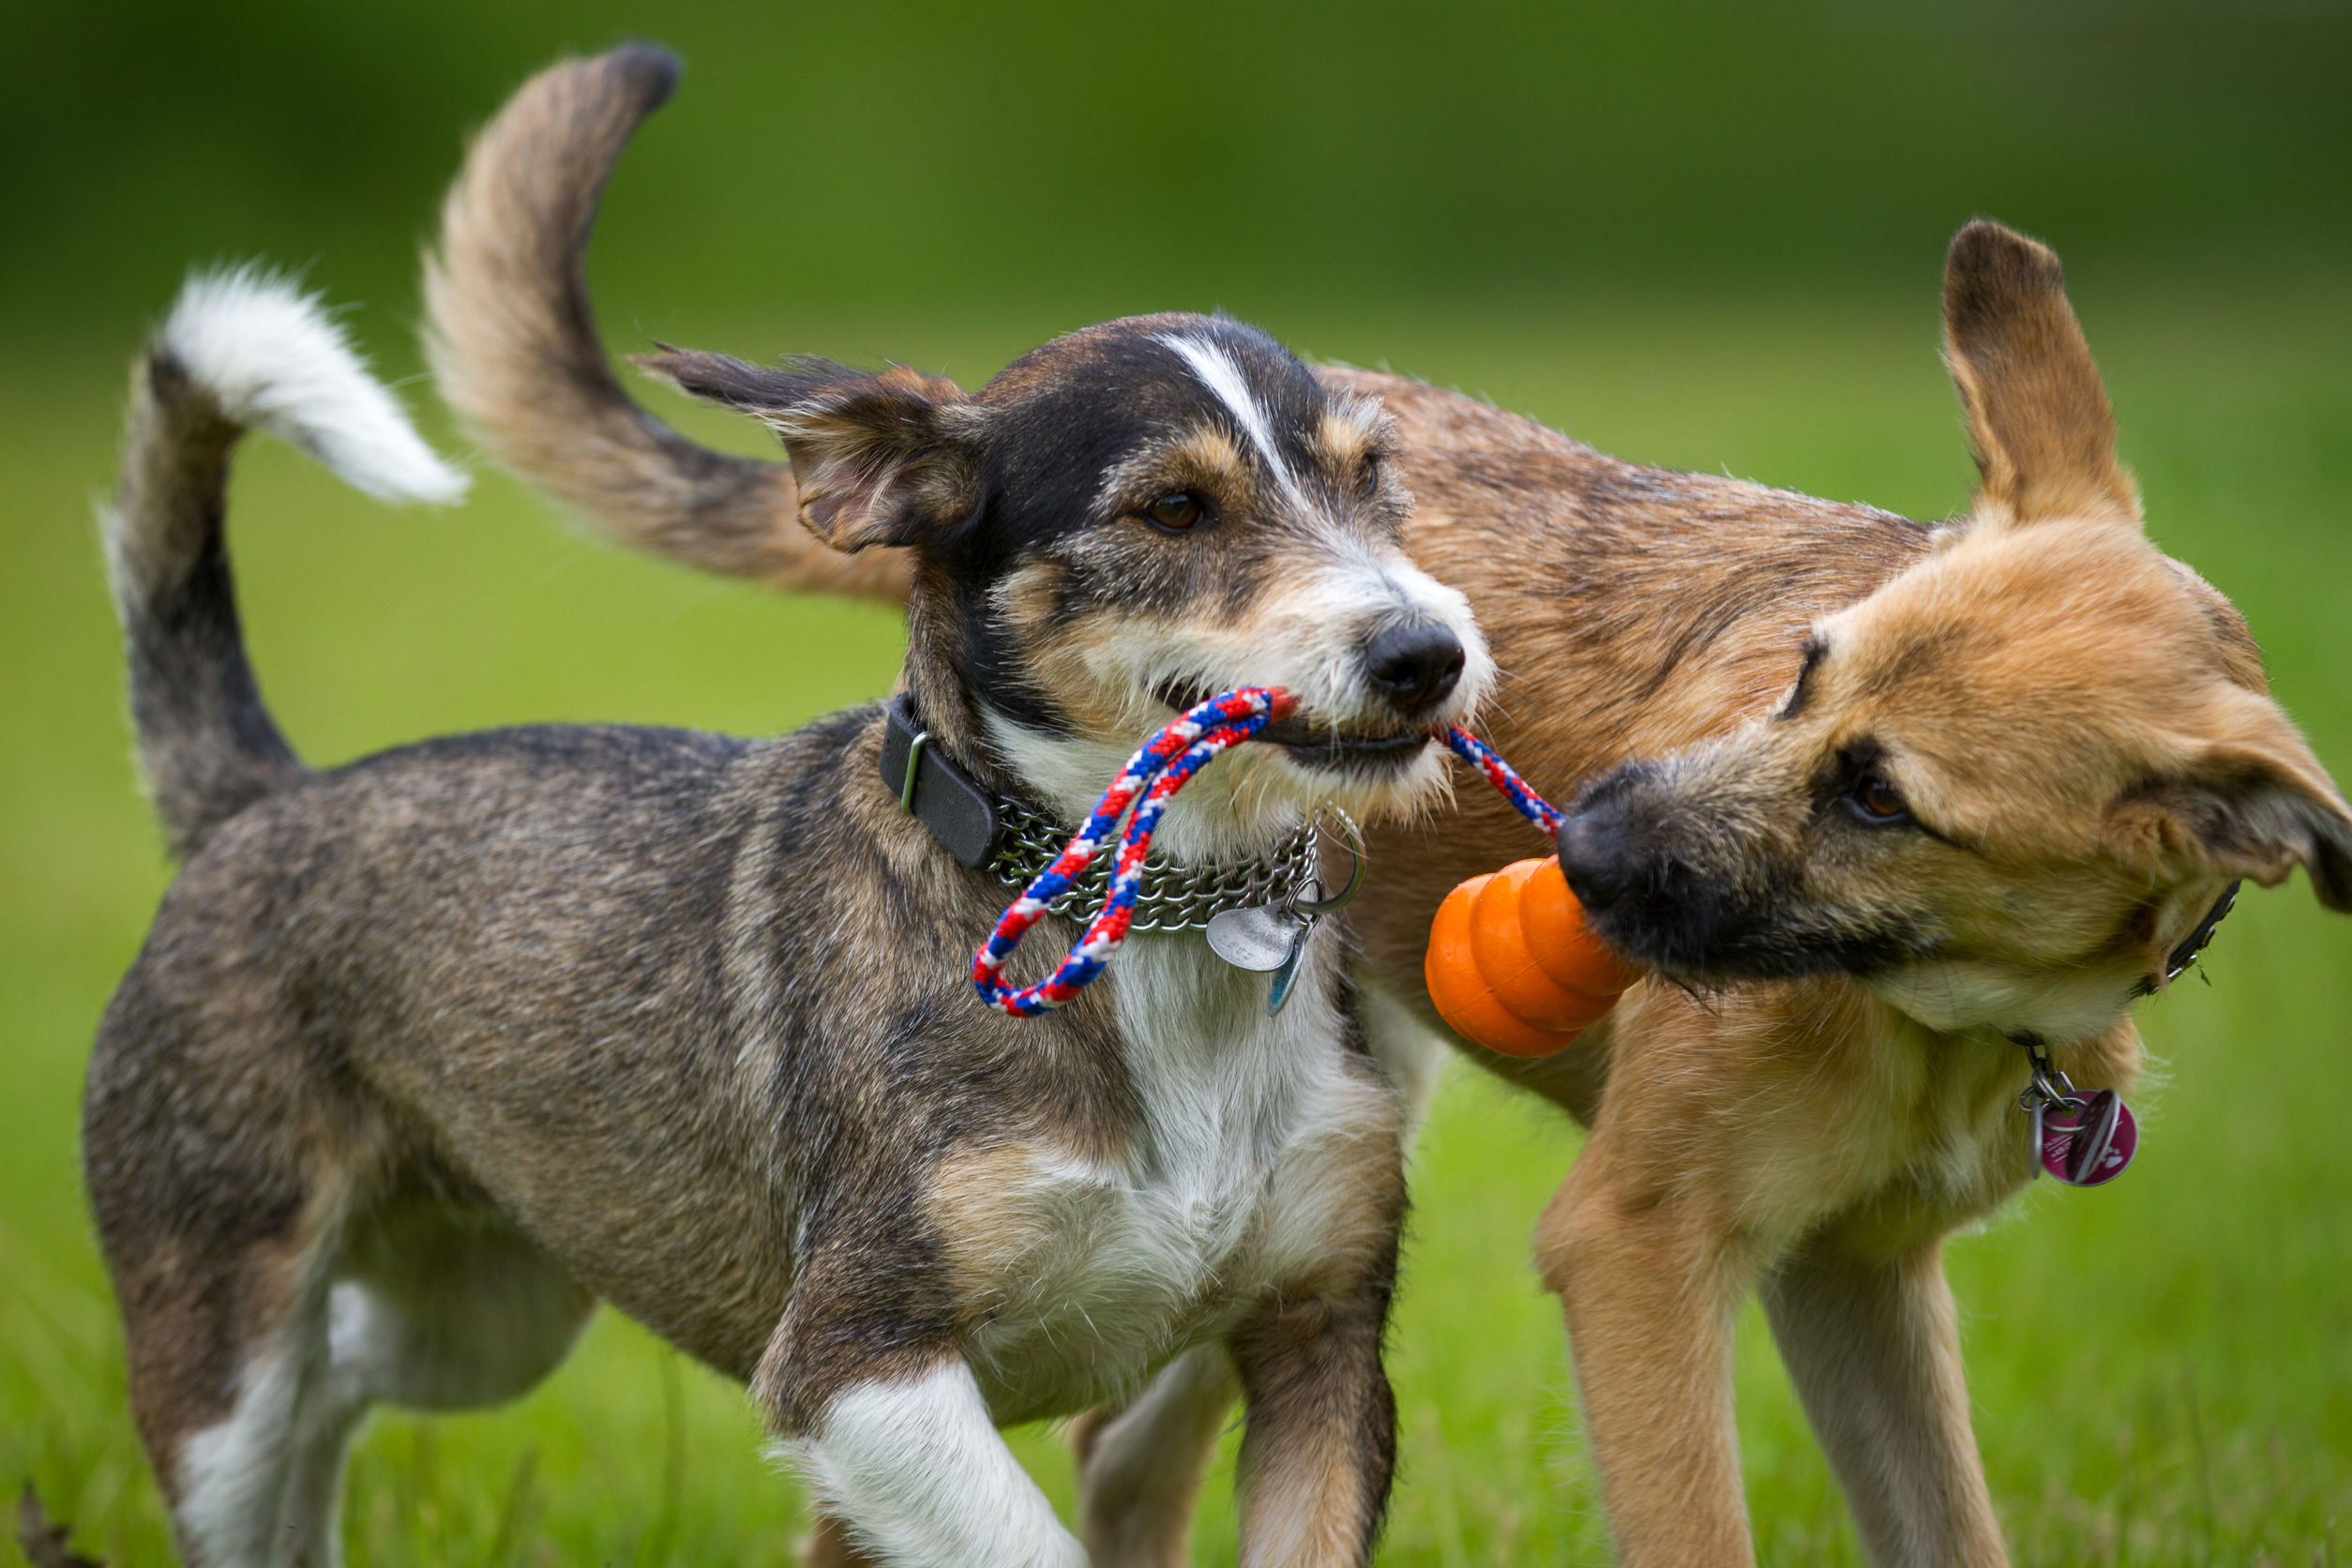 Two Dogs Playing in a Chicago Dog Park